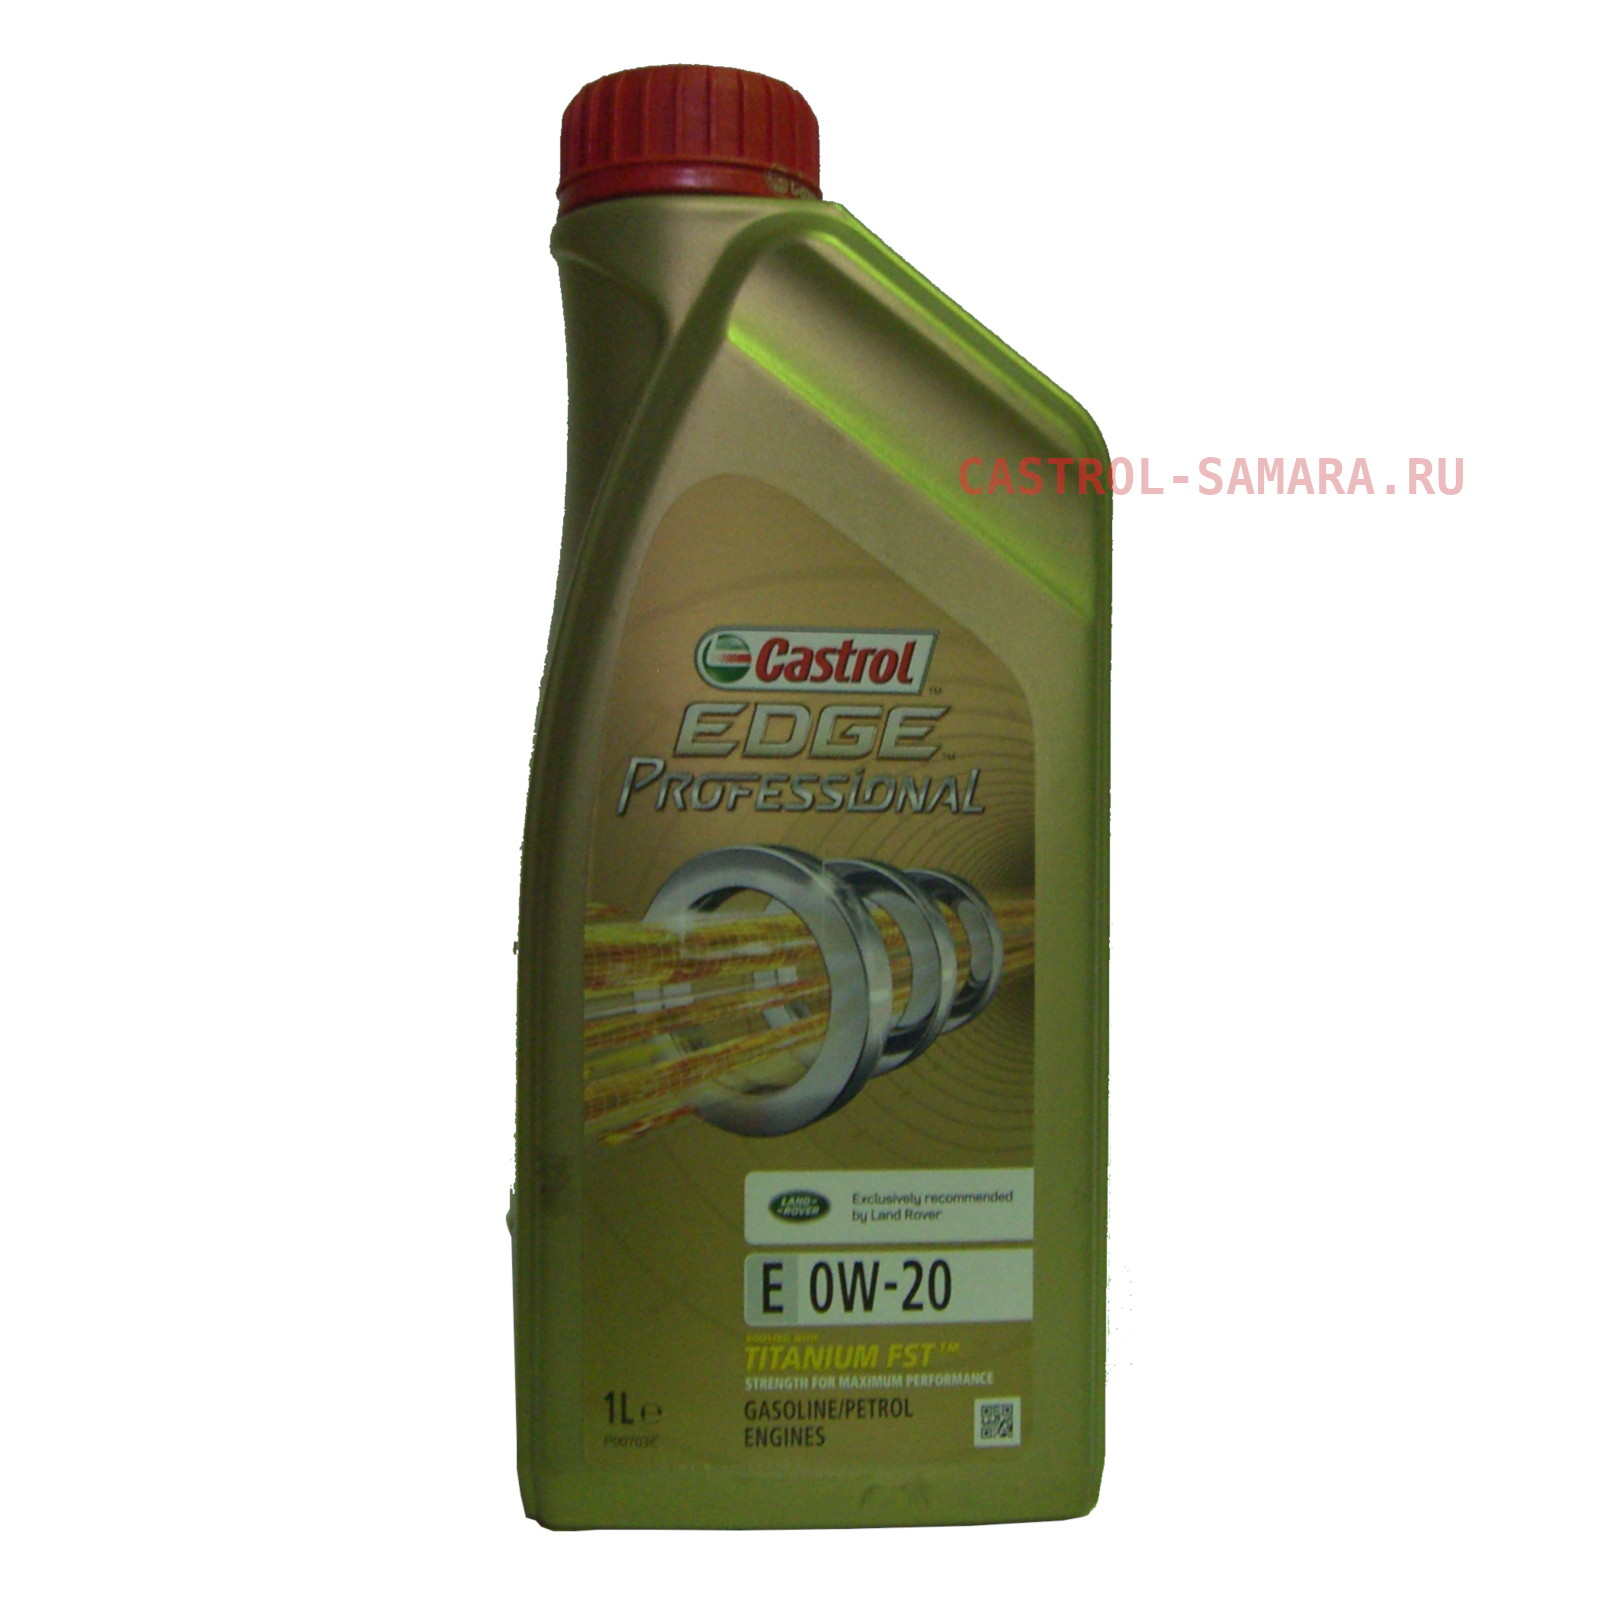 Моторное масло Castrol EDGE Professional Titanium FST E 0W-20 1л. (Land Rover)